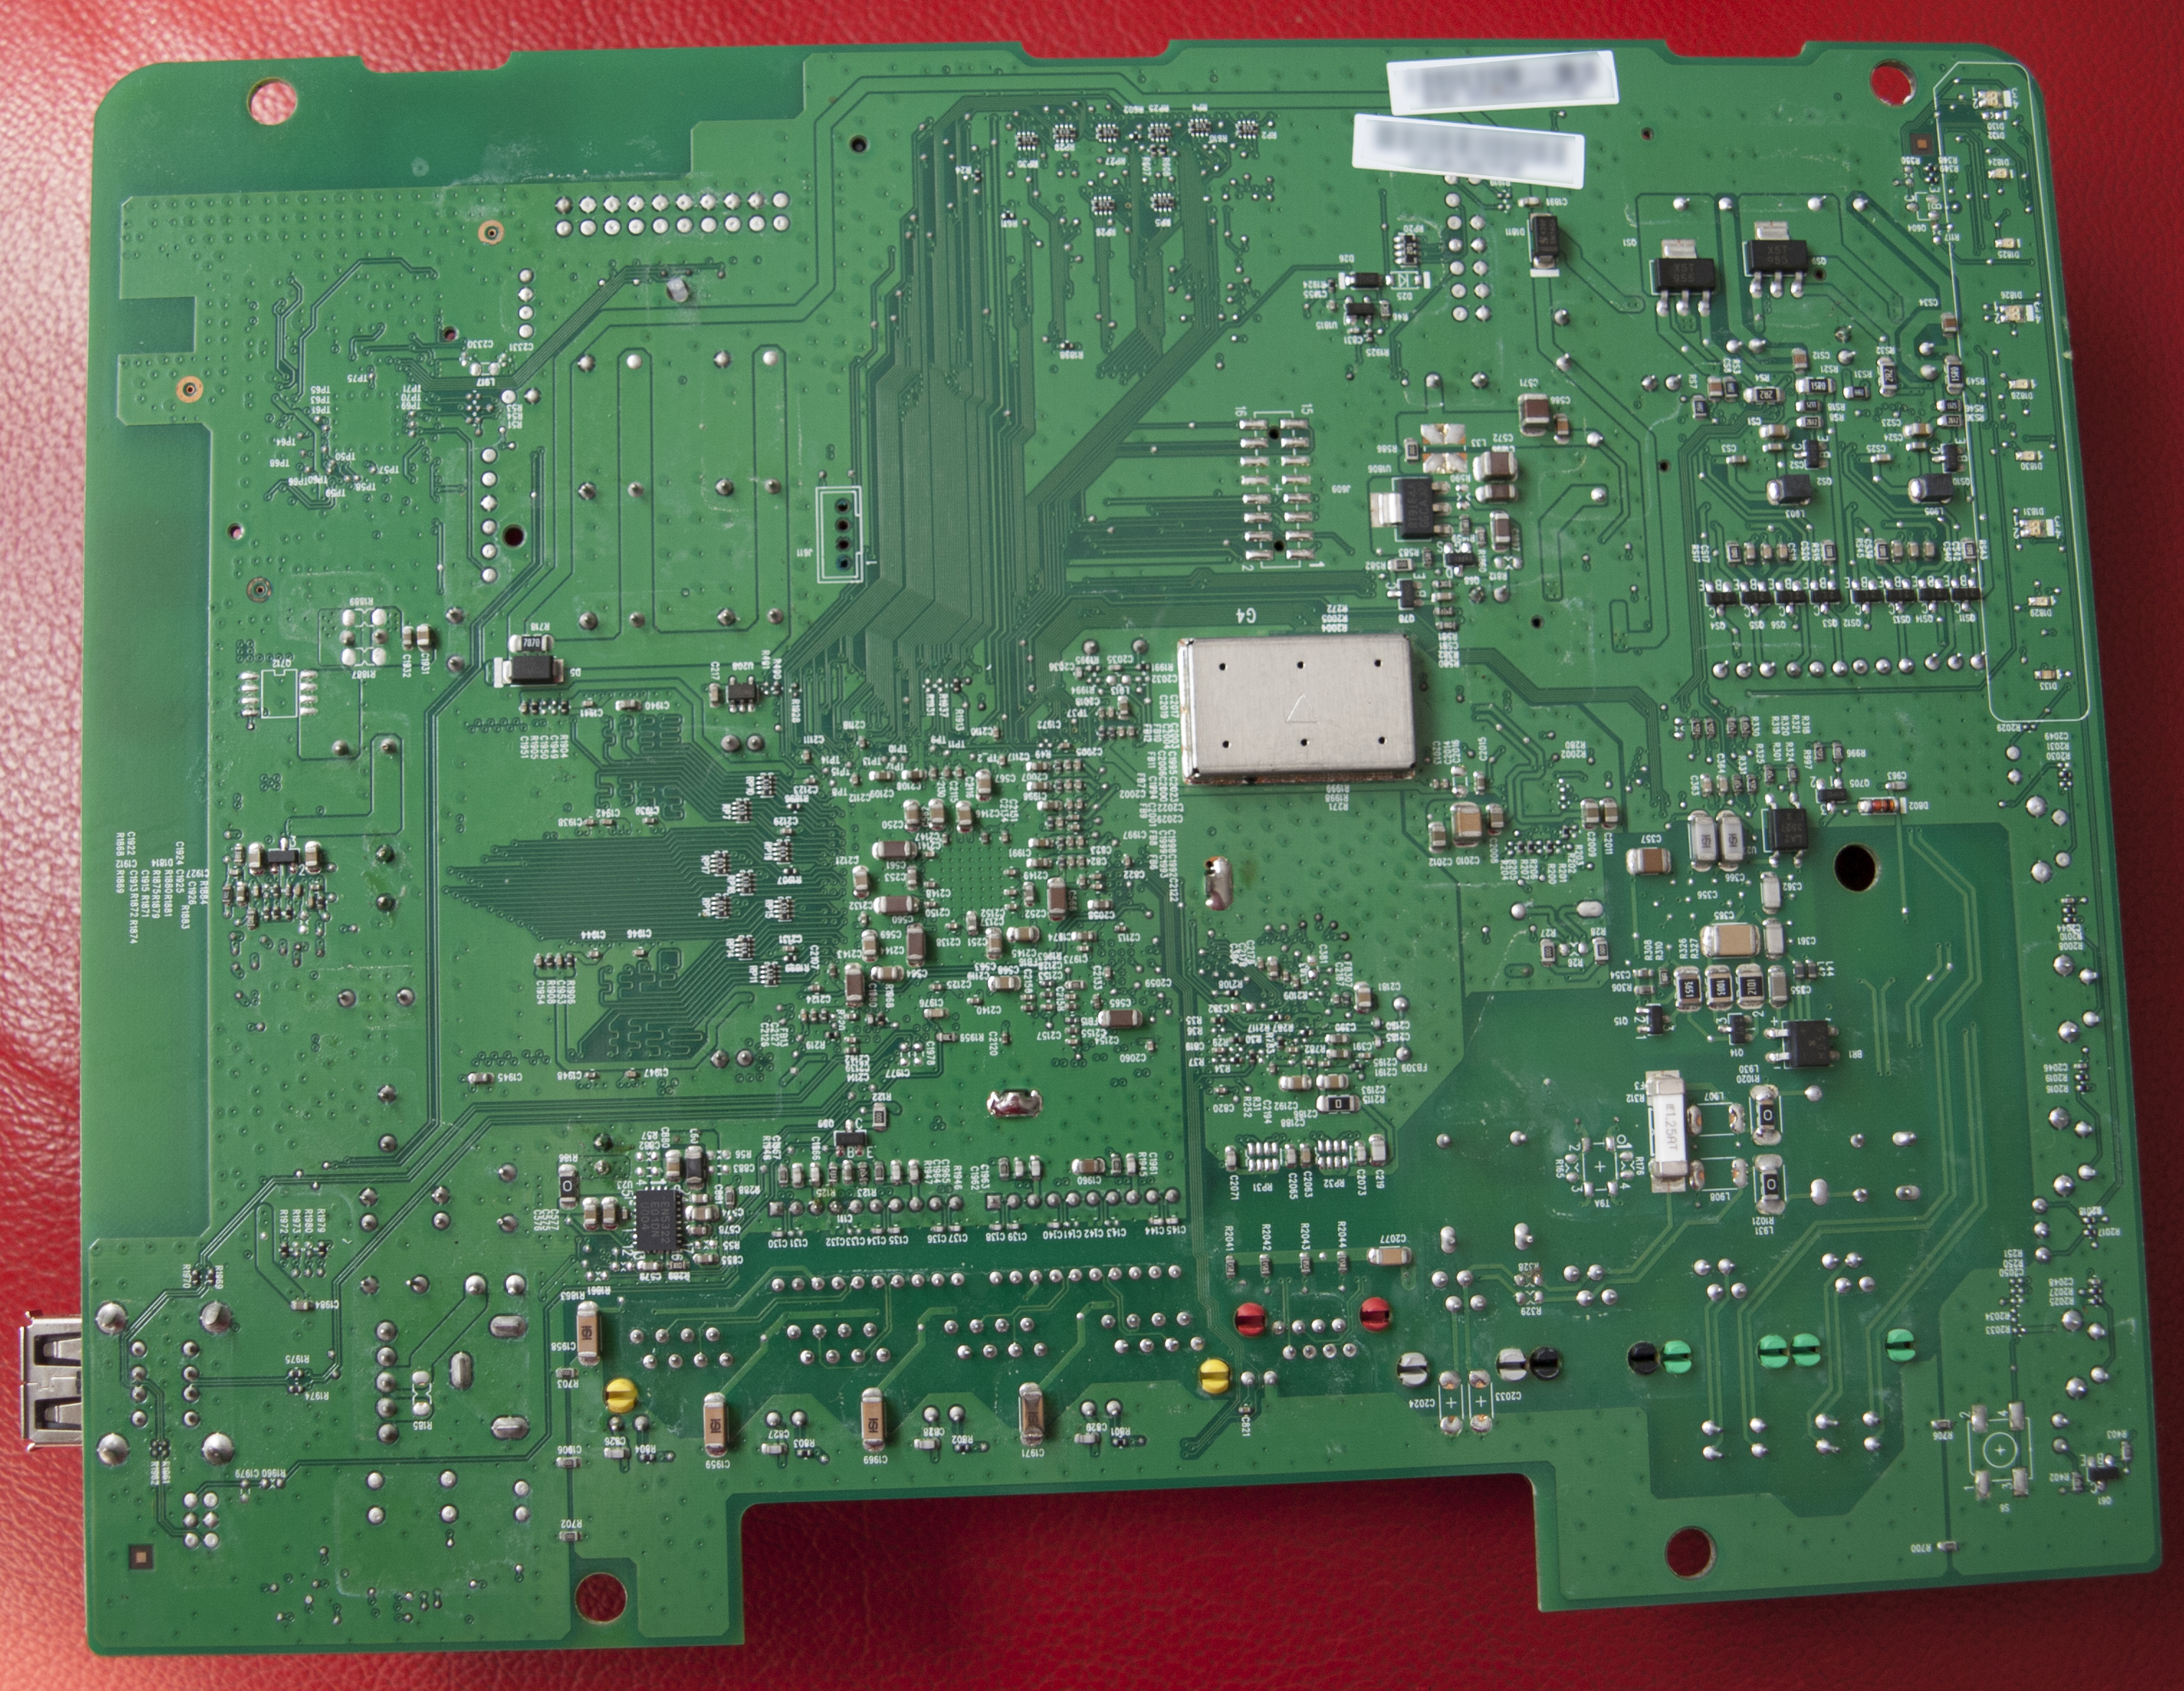 Back of the TG789vn board